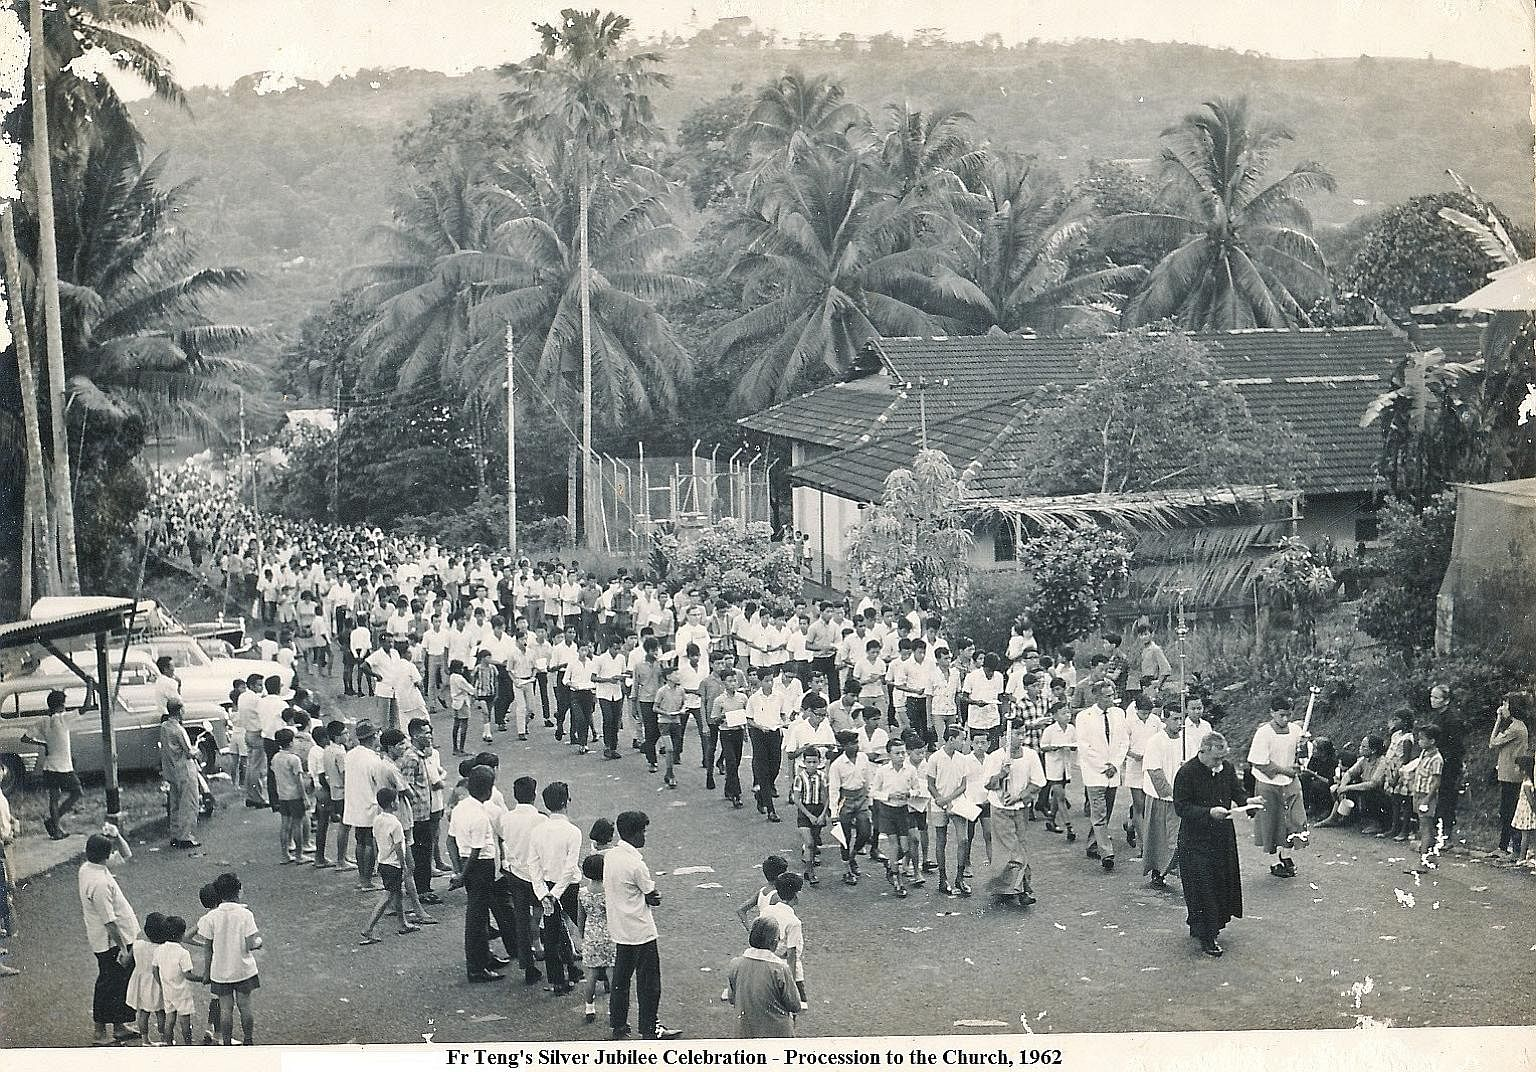 Father Teng leading parishioners in a procession to the church in 1962 to celebrate his Silver Jubilee.